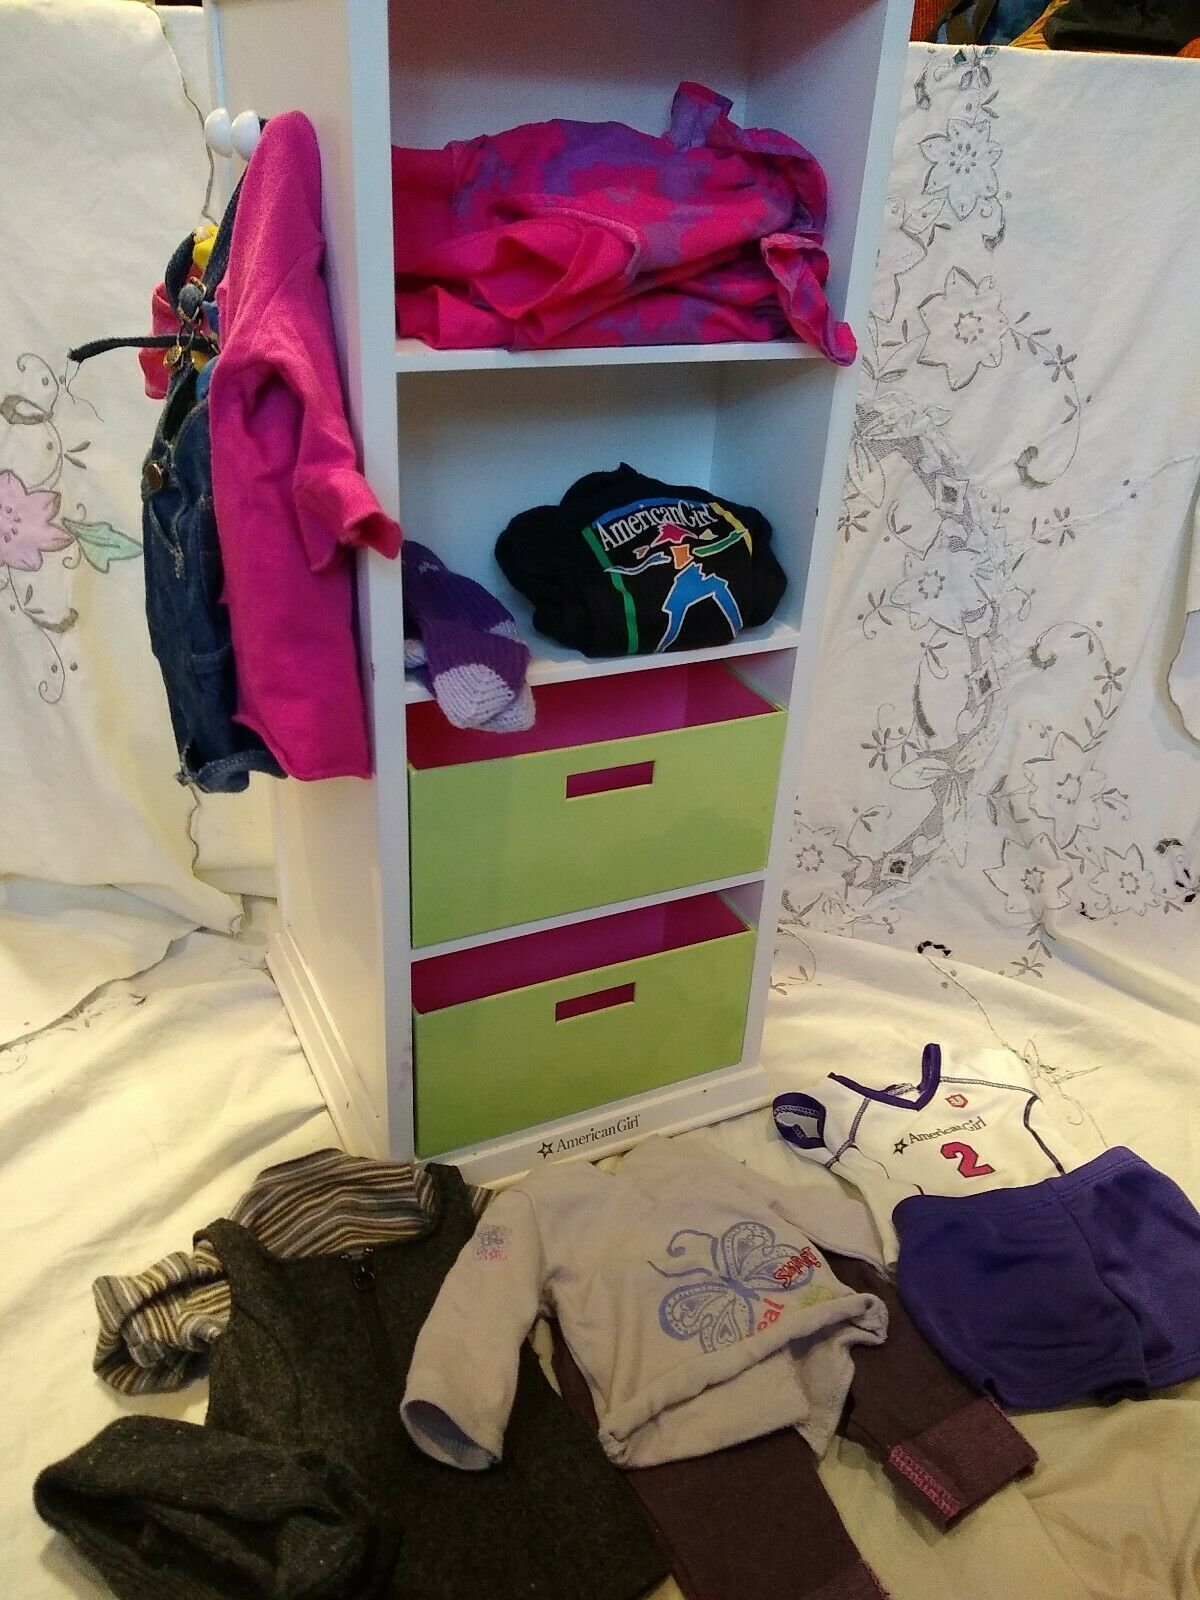 American Girl Doll Storage Tower Shelf with Drawers and Clothes